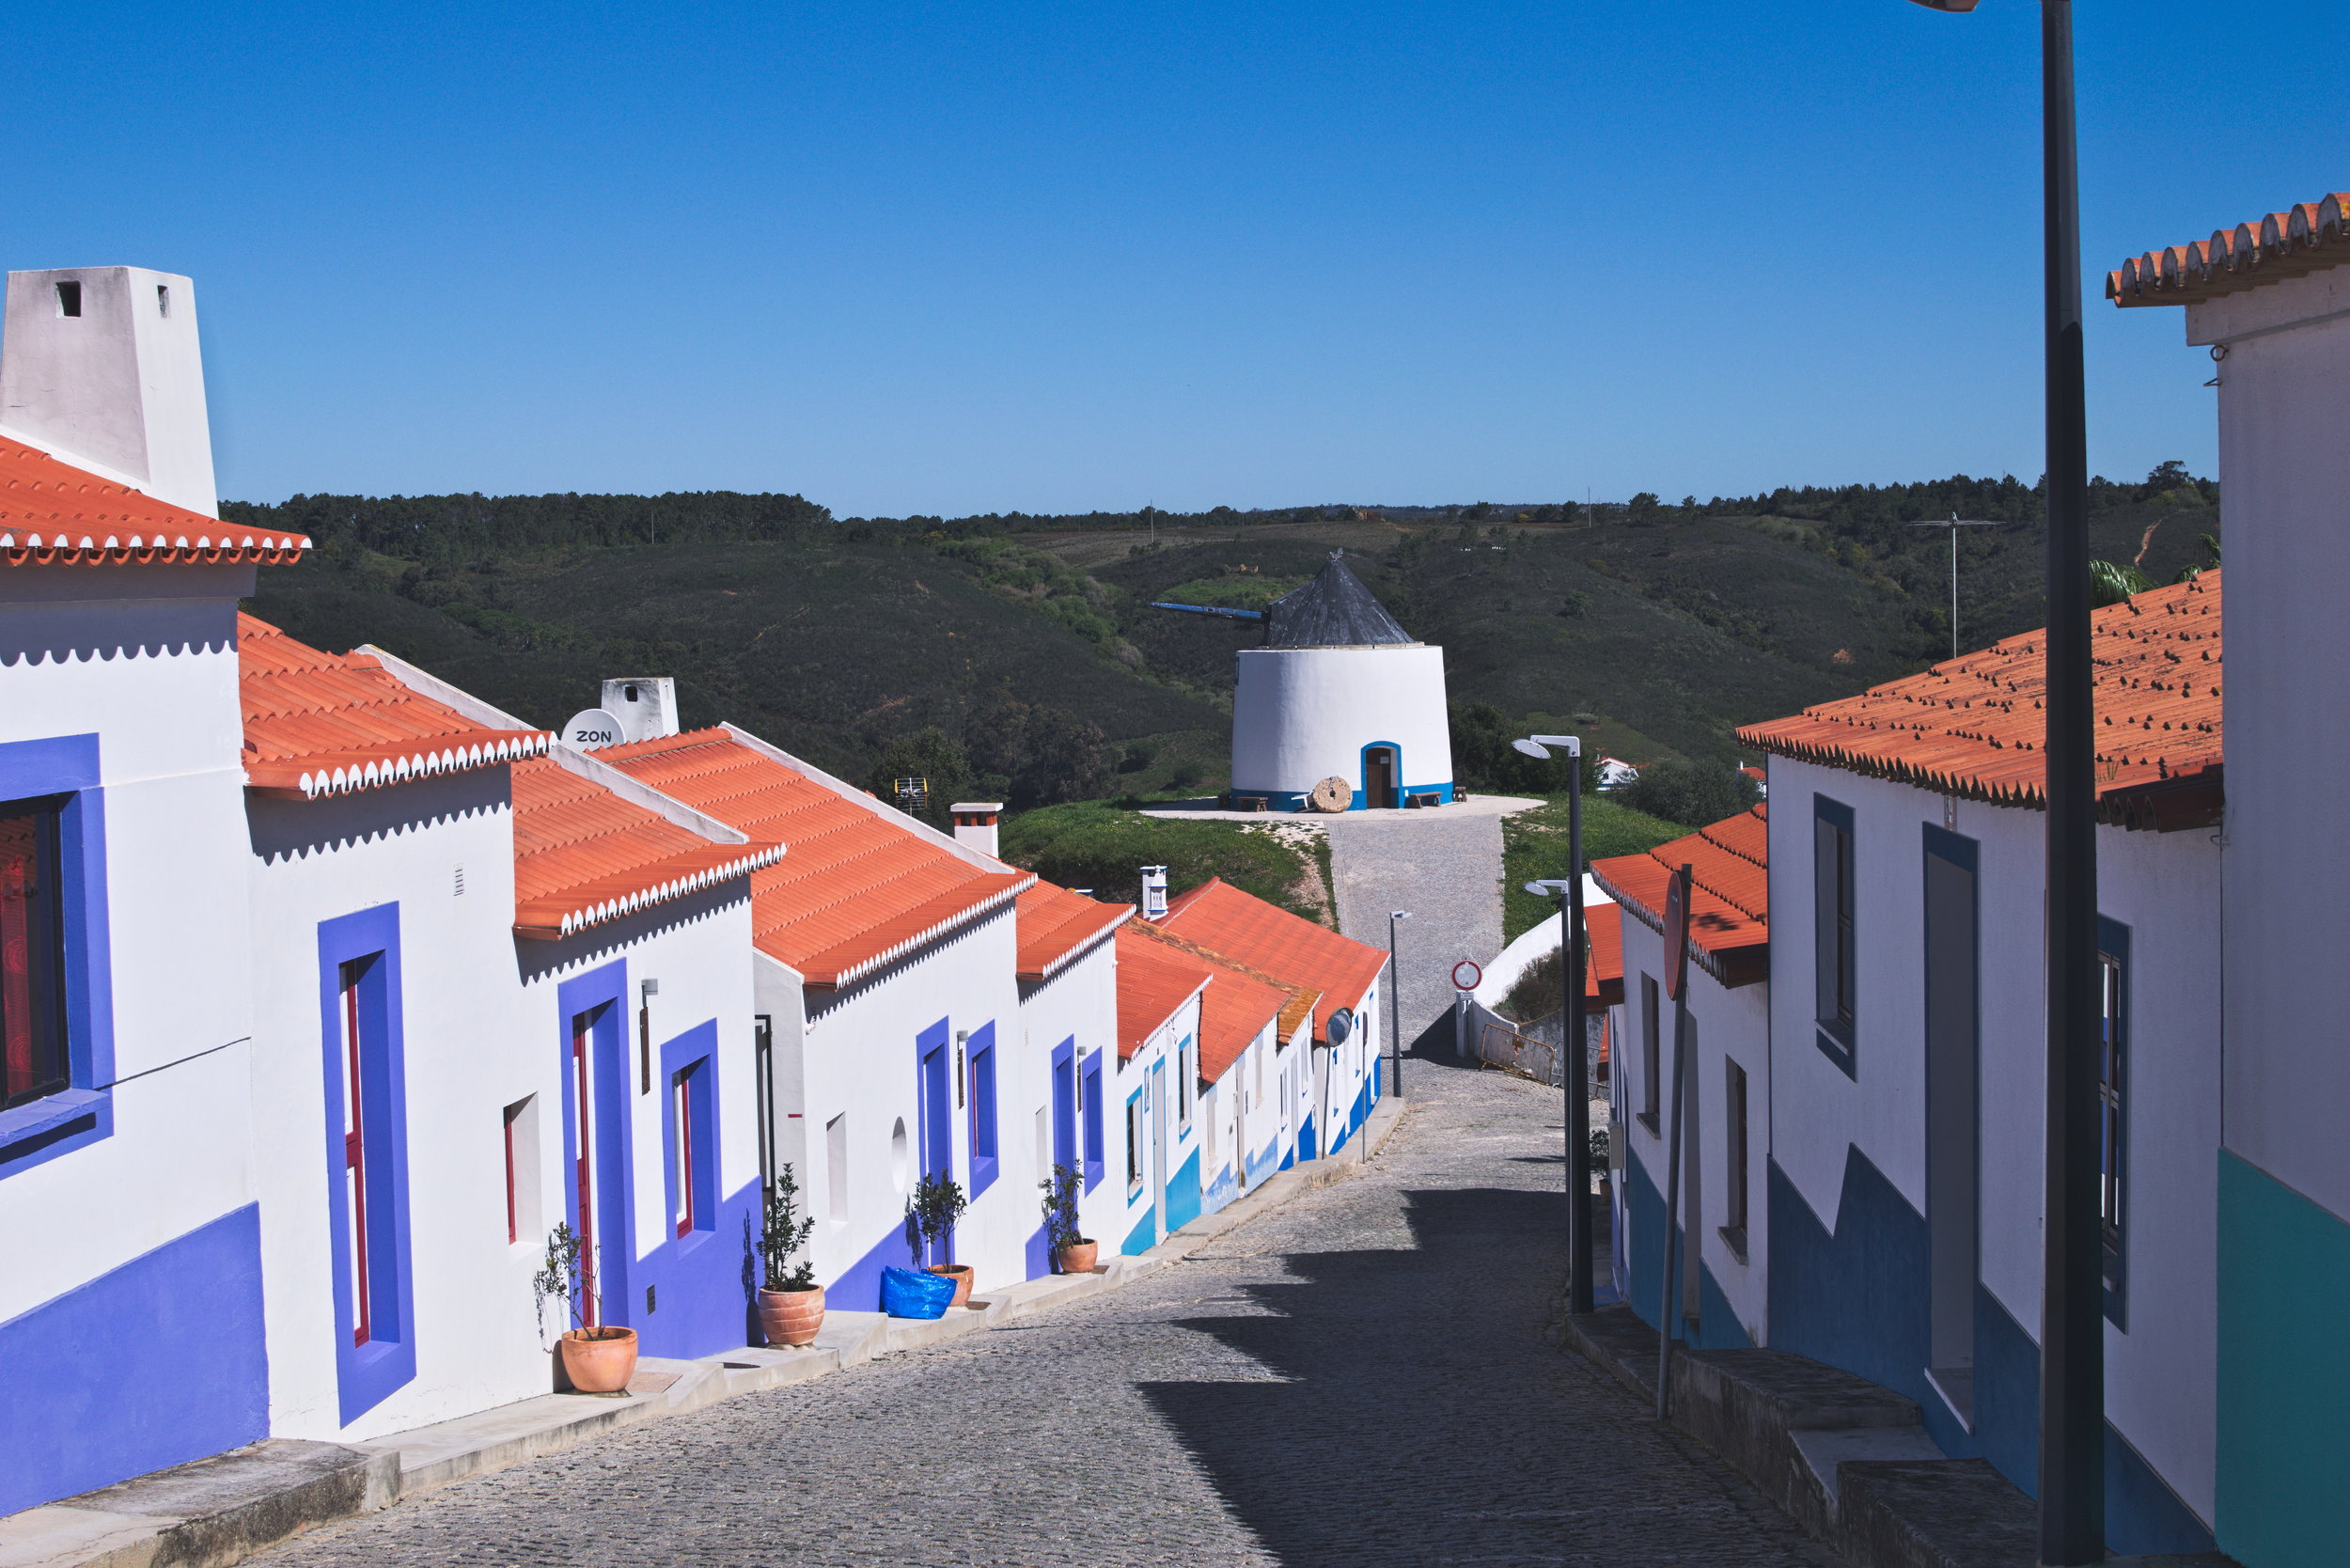 Portugal's towns were very bright and colorful, as Odeceixe demontrates here.